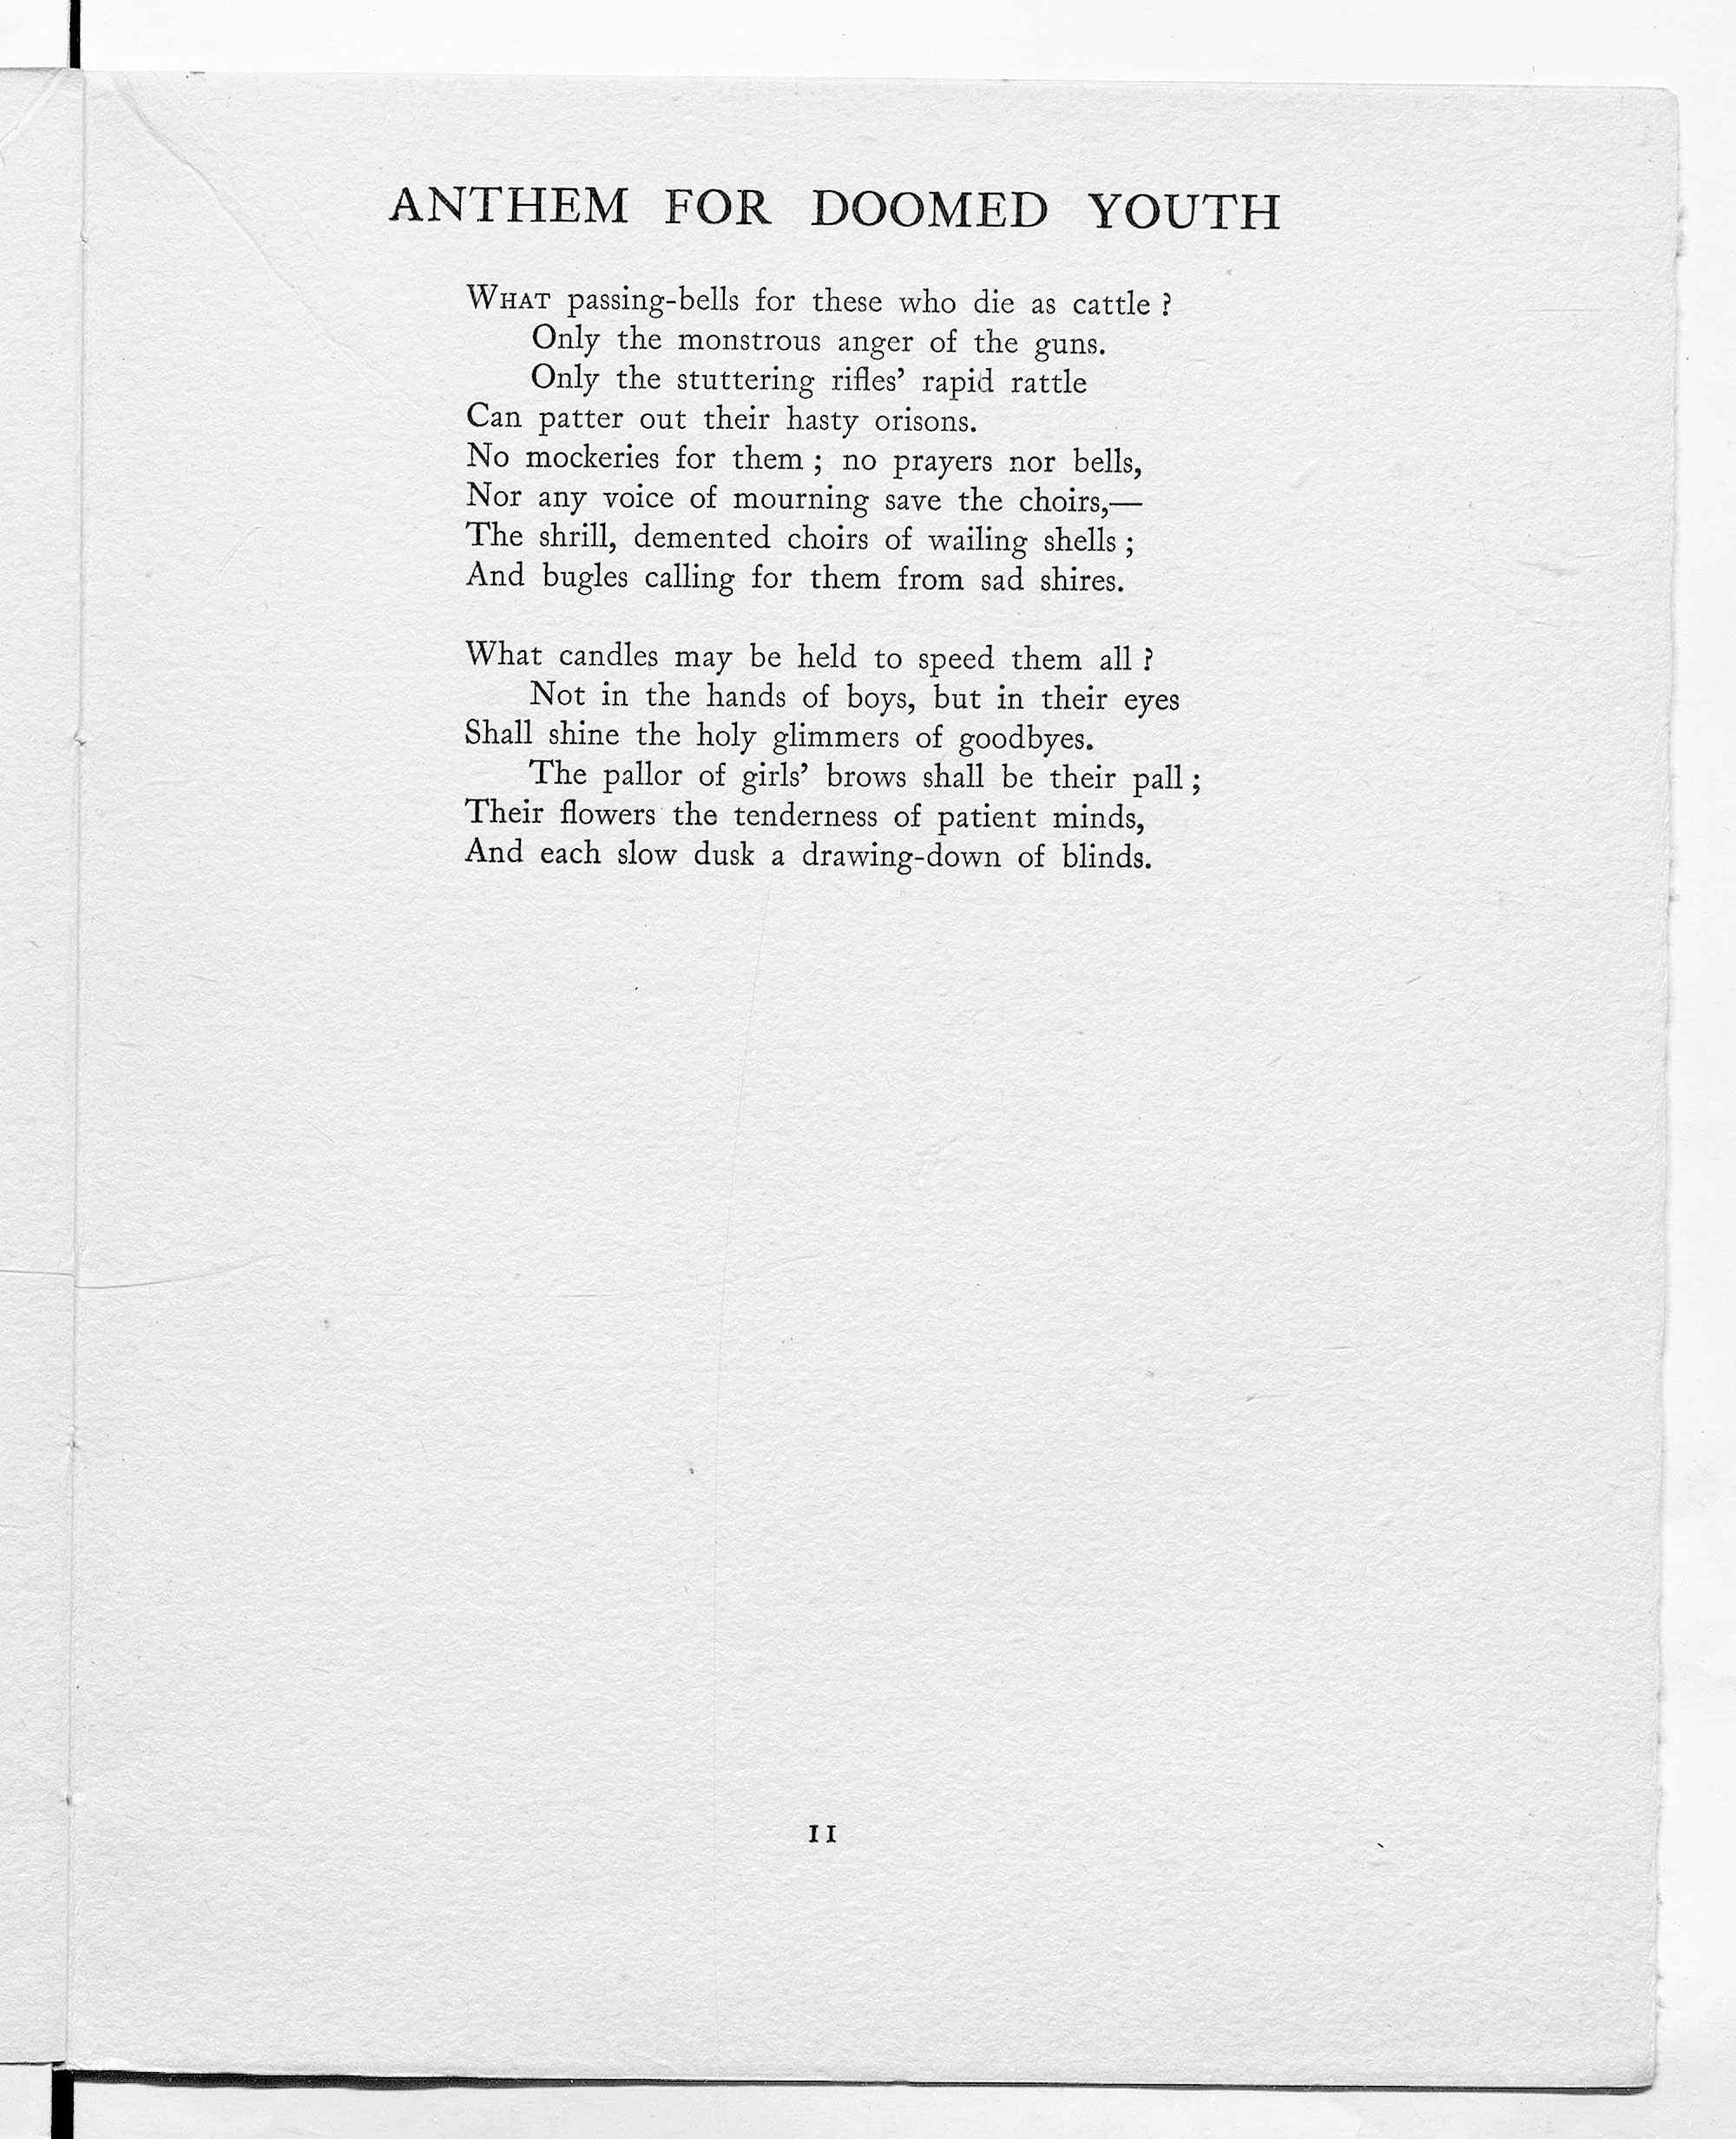 'Anthem for Doomed Youth' by Wilfred Owen, as published in 'Poems' (1920).